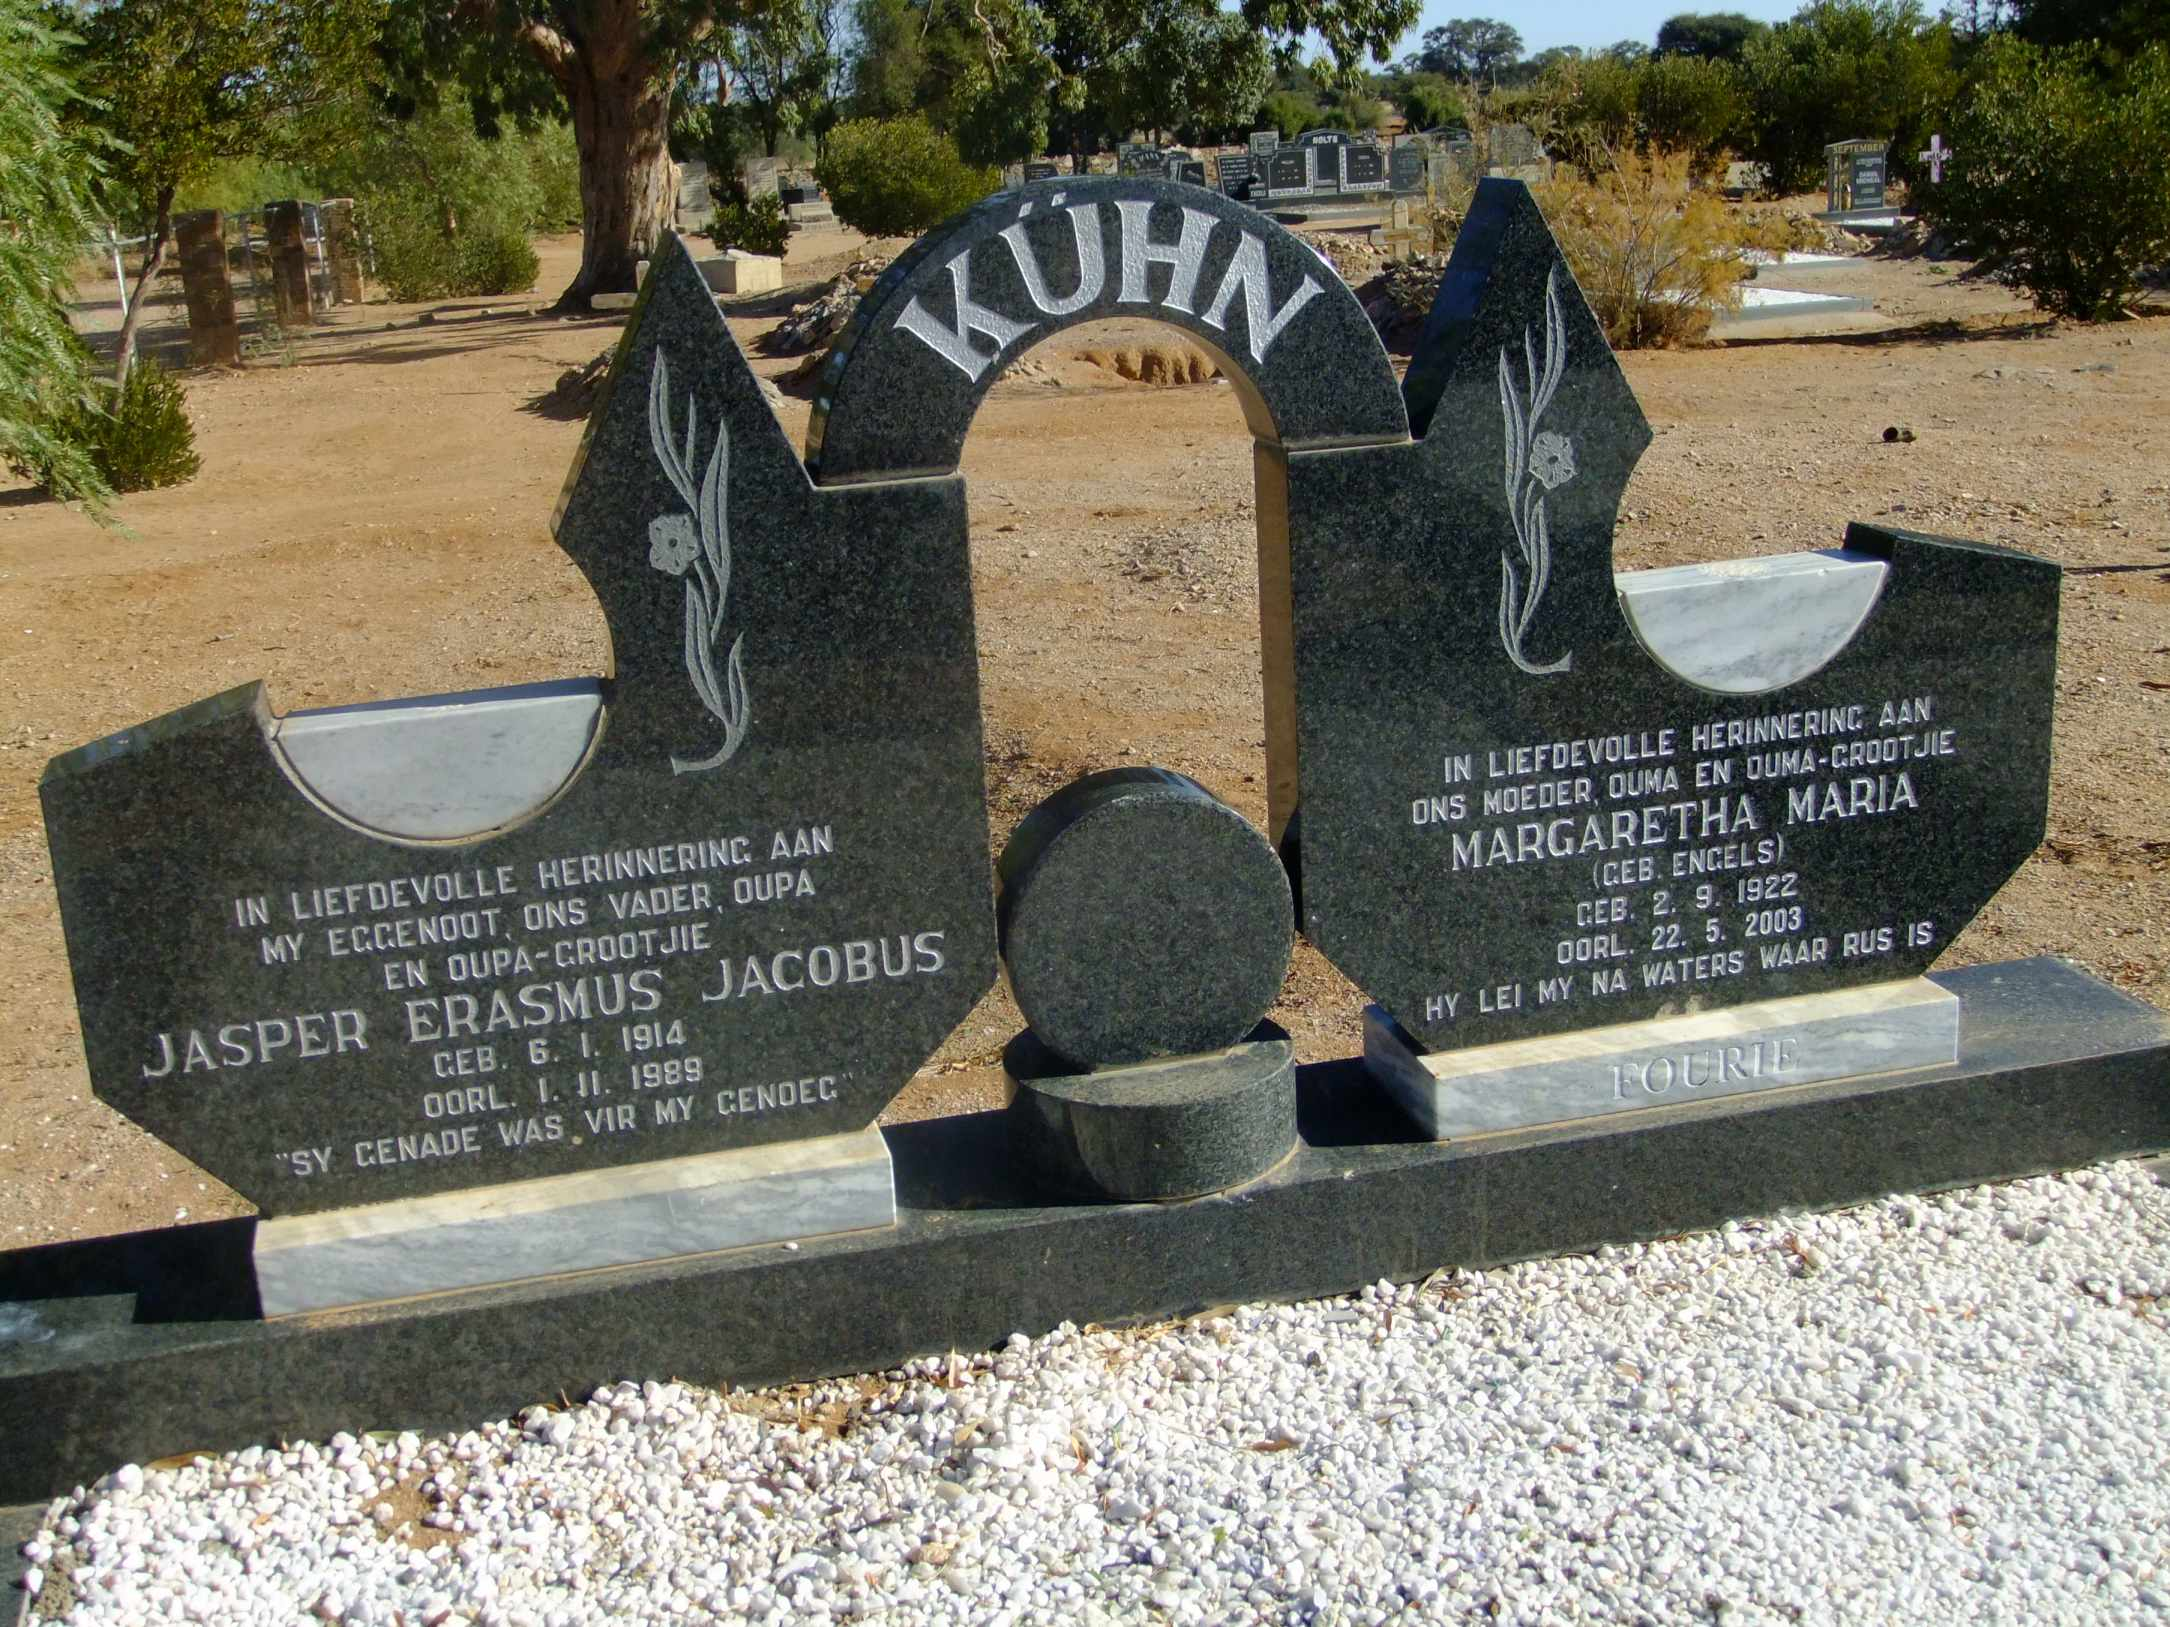 Kuhn, Jasper Erasmus Jacobus born 06 January 1914 died 01 Novenber 1989 and Margaretha Maria nee Engels born 02 September 1922 died 22 May 2003